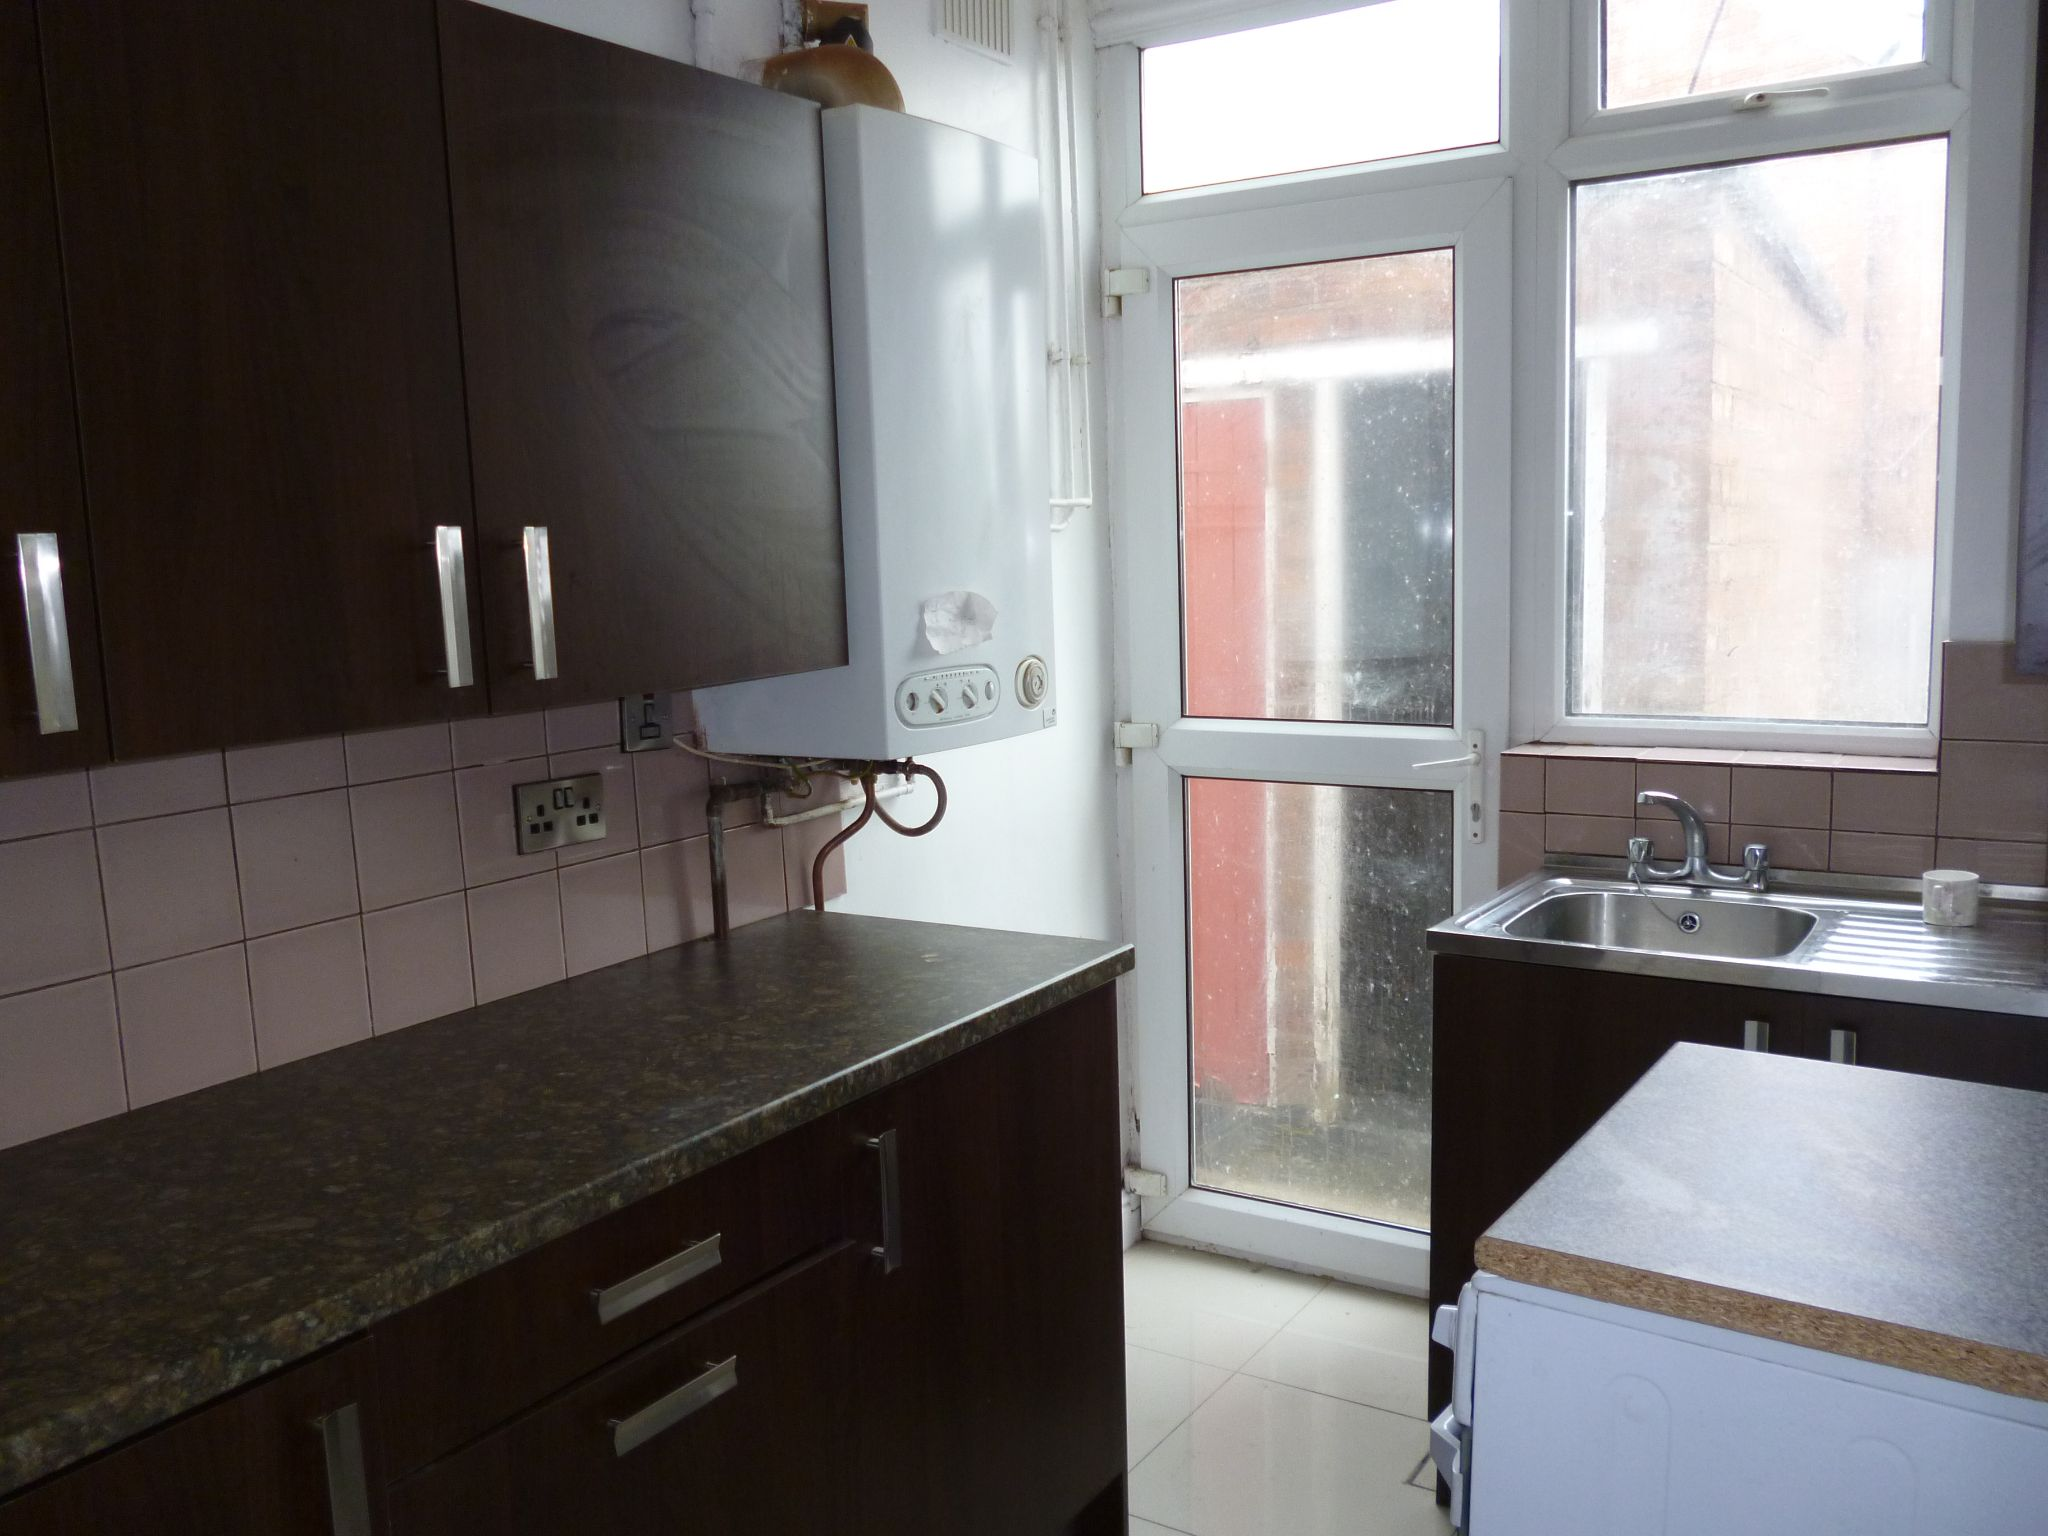 3 Bedroom Semi-detached House To Let 176 Canon Street Image 6